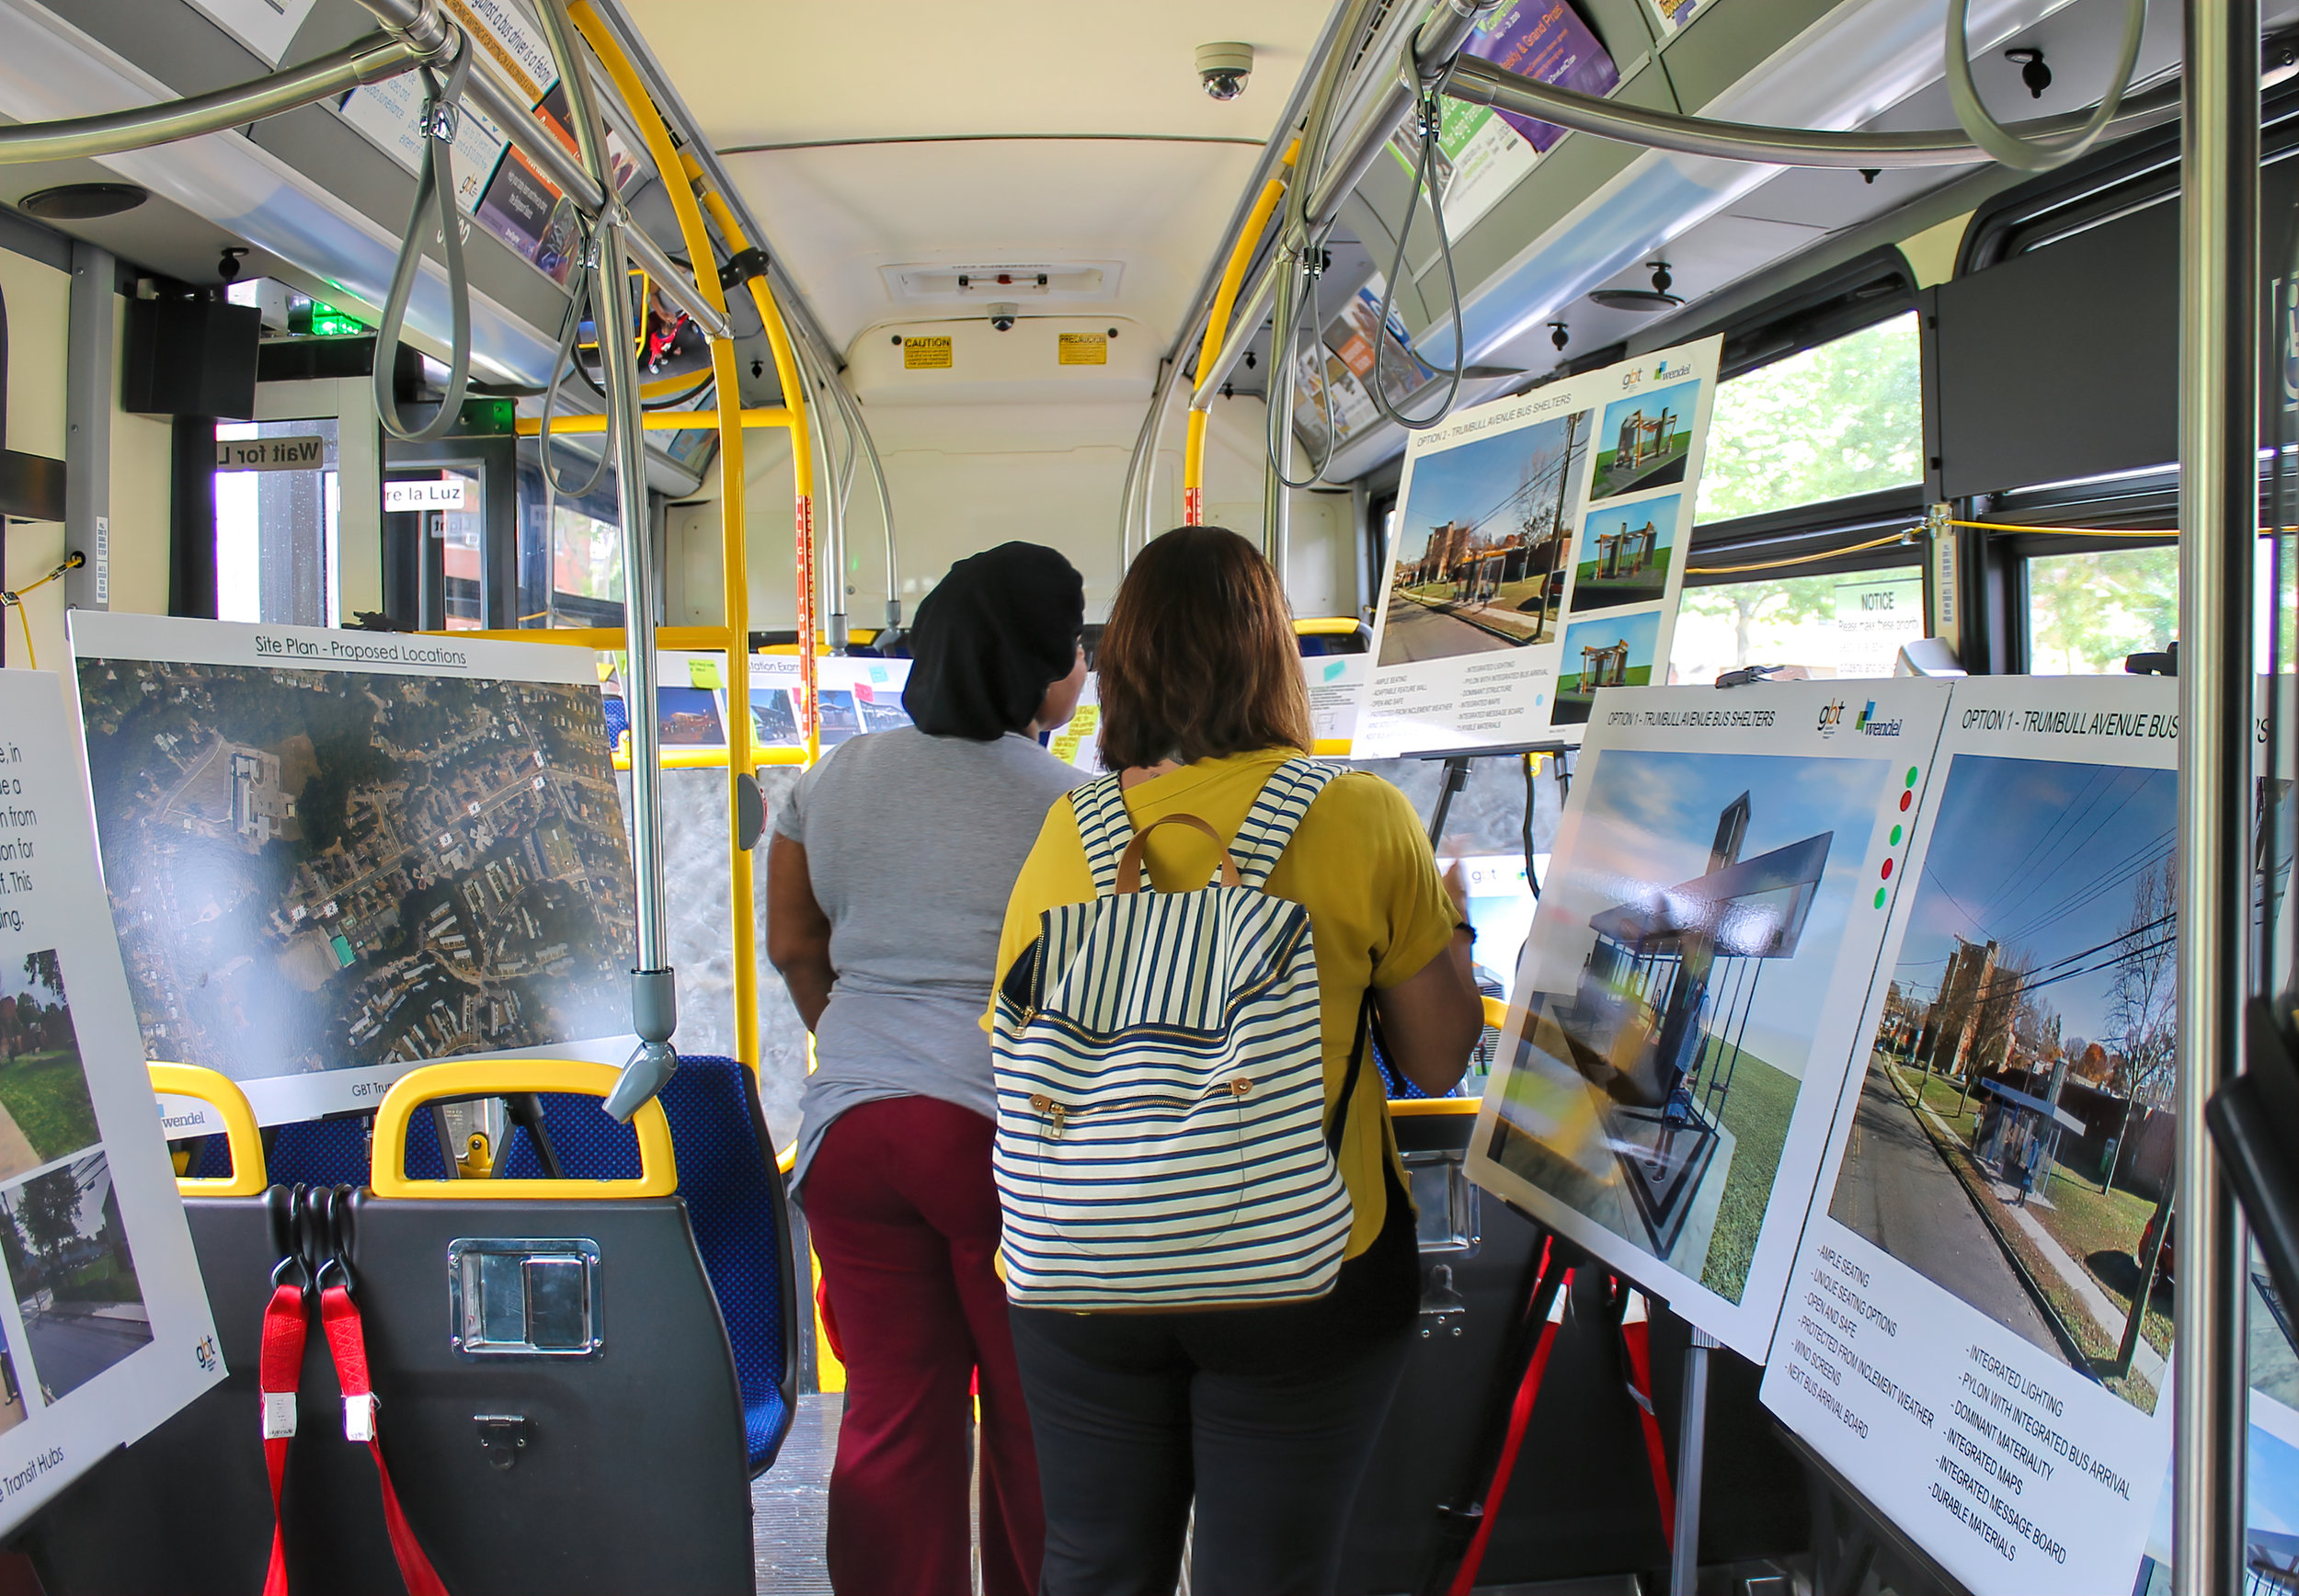 Public Outreach on a GBT bus at Trumbull Gardens.